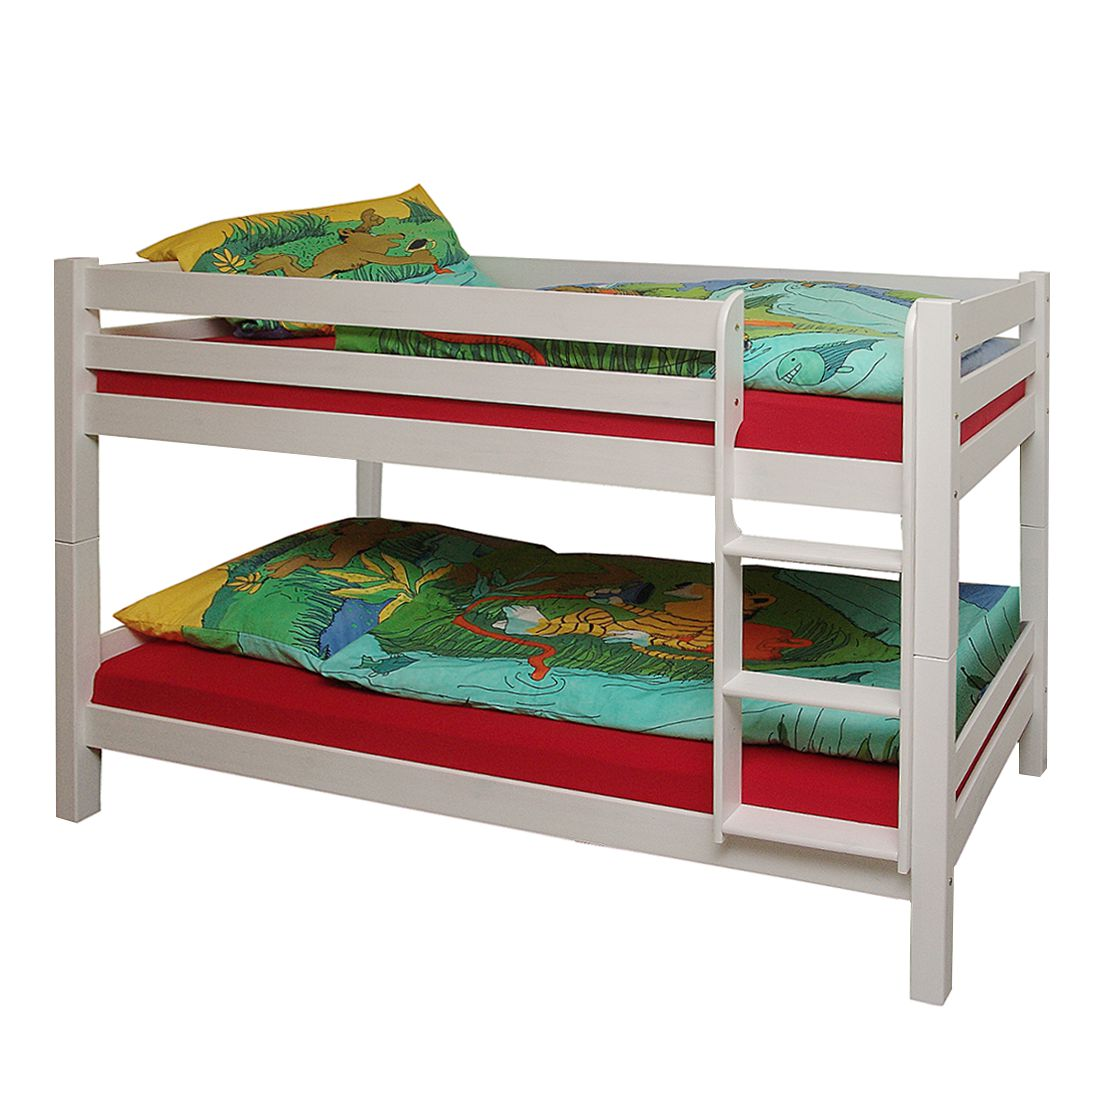 Stapelbed Knuth - massief grenenhout wit gelakt Hoogslaper met bedlades, Kids Club Collection